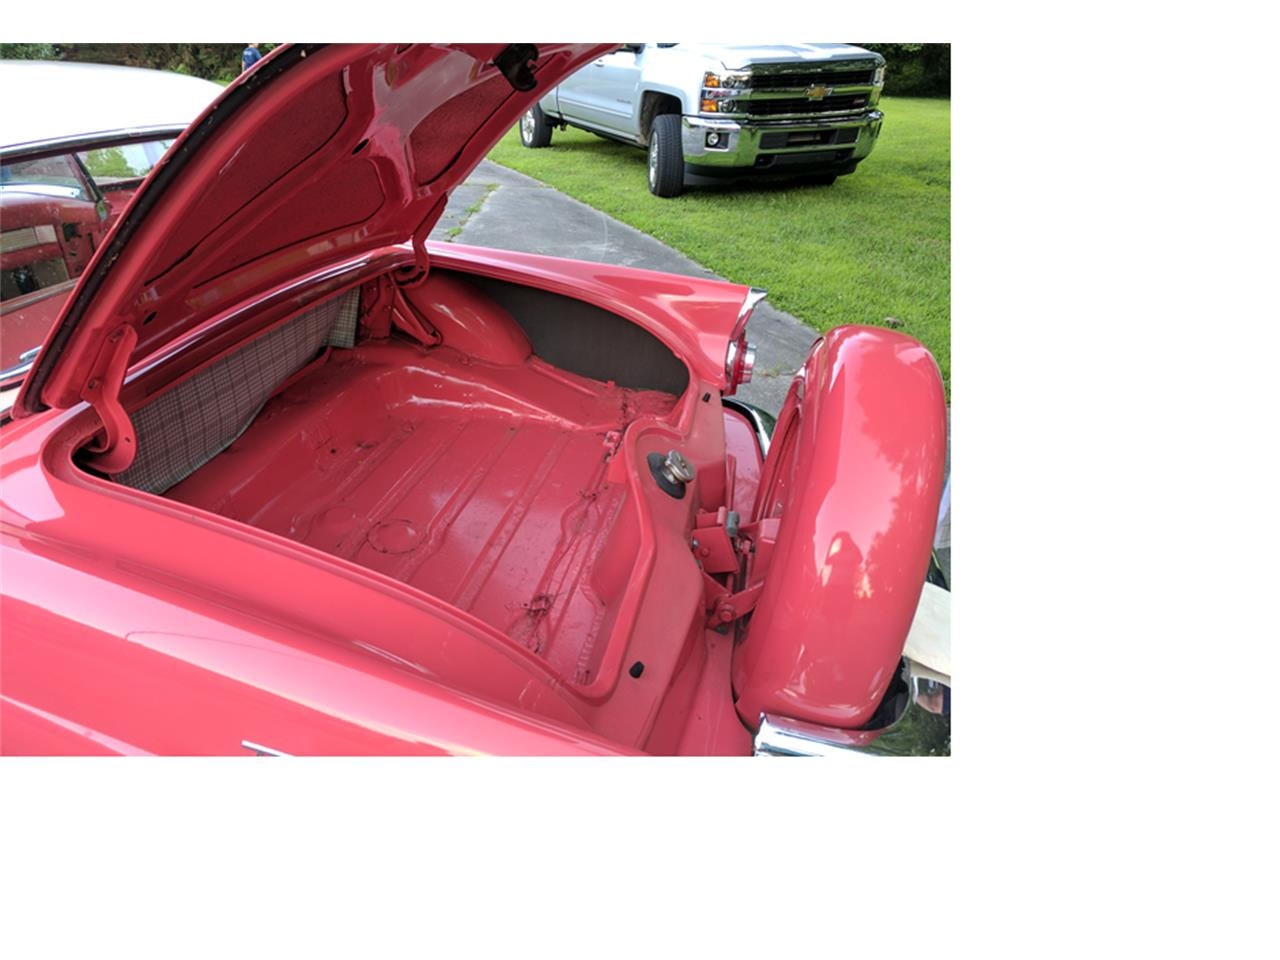 Large Picture of Classic 1956 Ford Thunderbird - $36,000.00 - LCMP